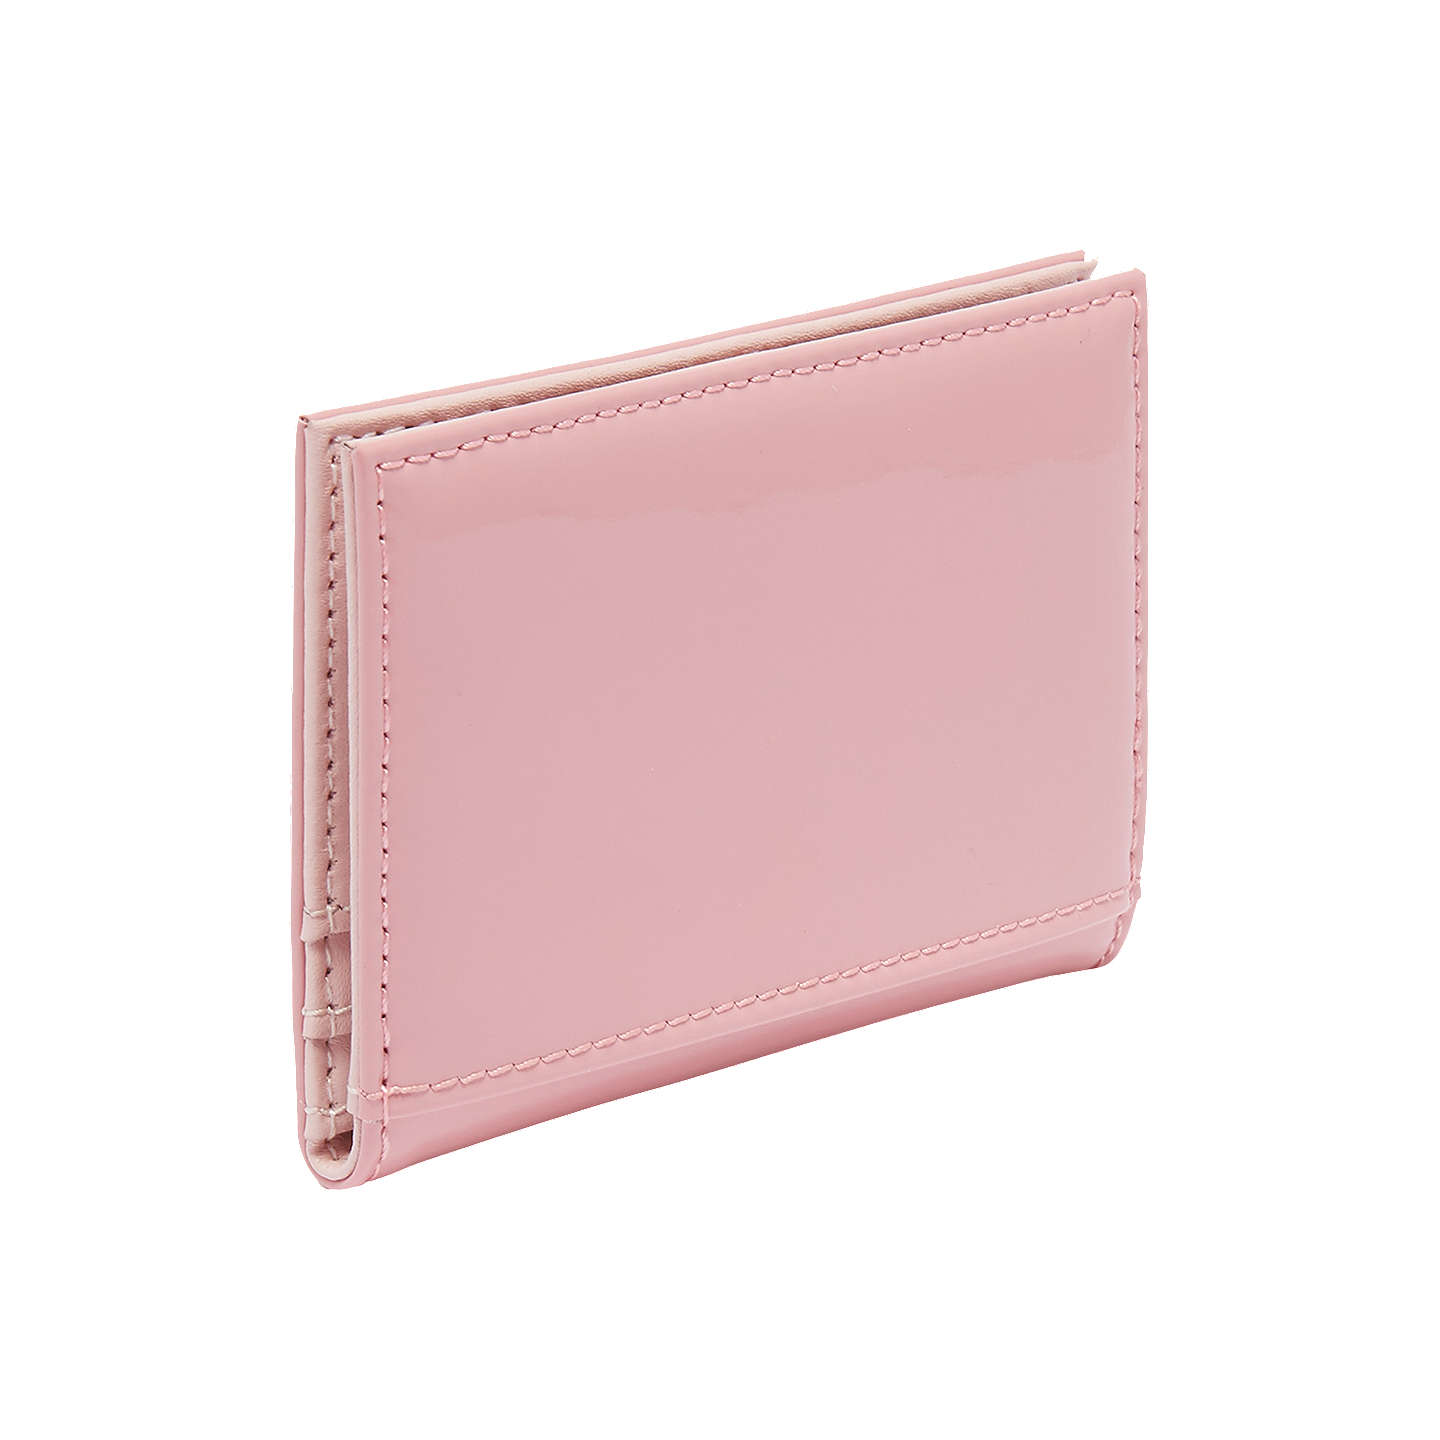 BuyTed Baker Lella Leather Card Holder, Dusky Pink Online at johnlewis.com